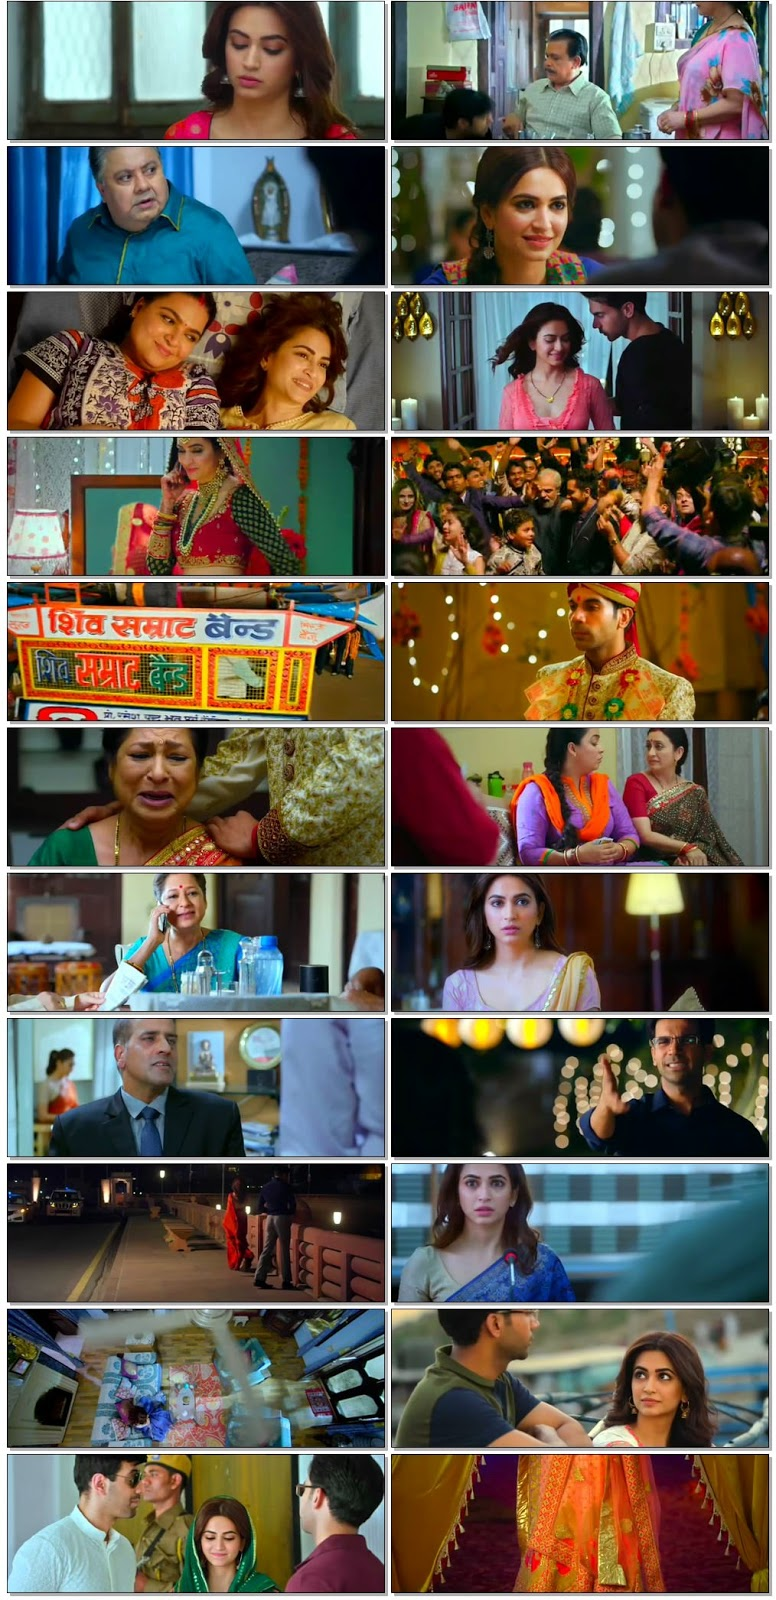 Shaadi Mein Zaroor Aana 2017 Full Movie Free Download 720p WEB-DL